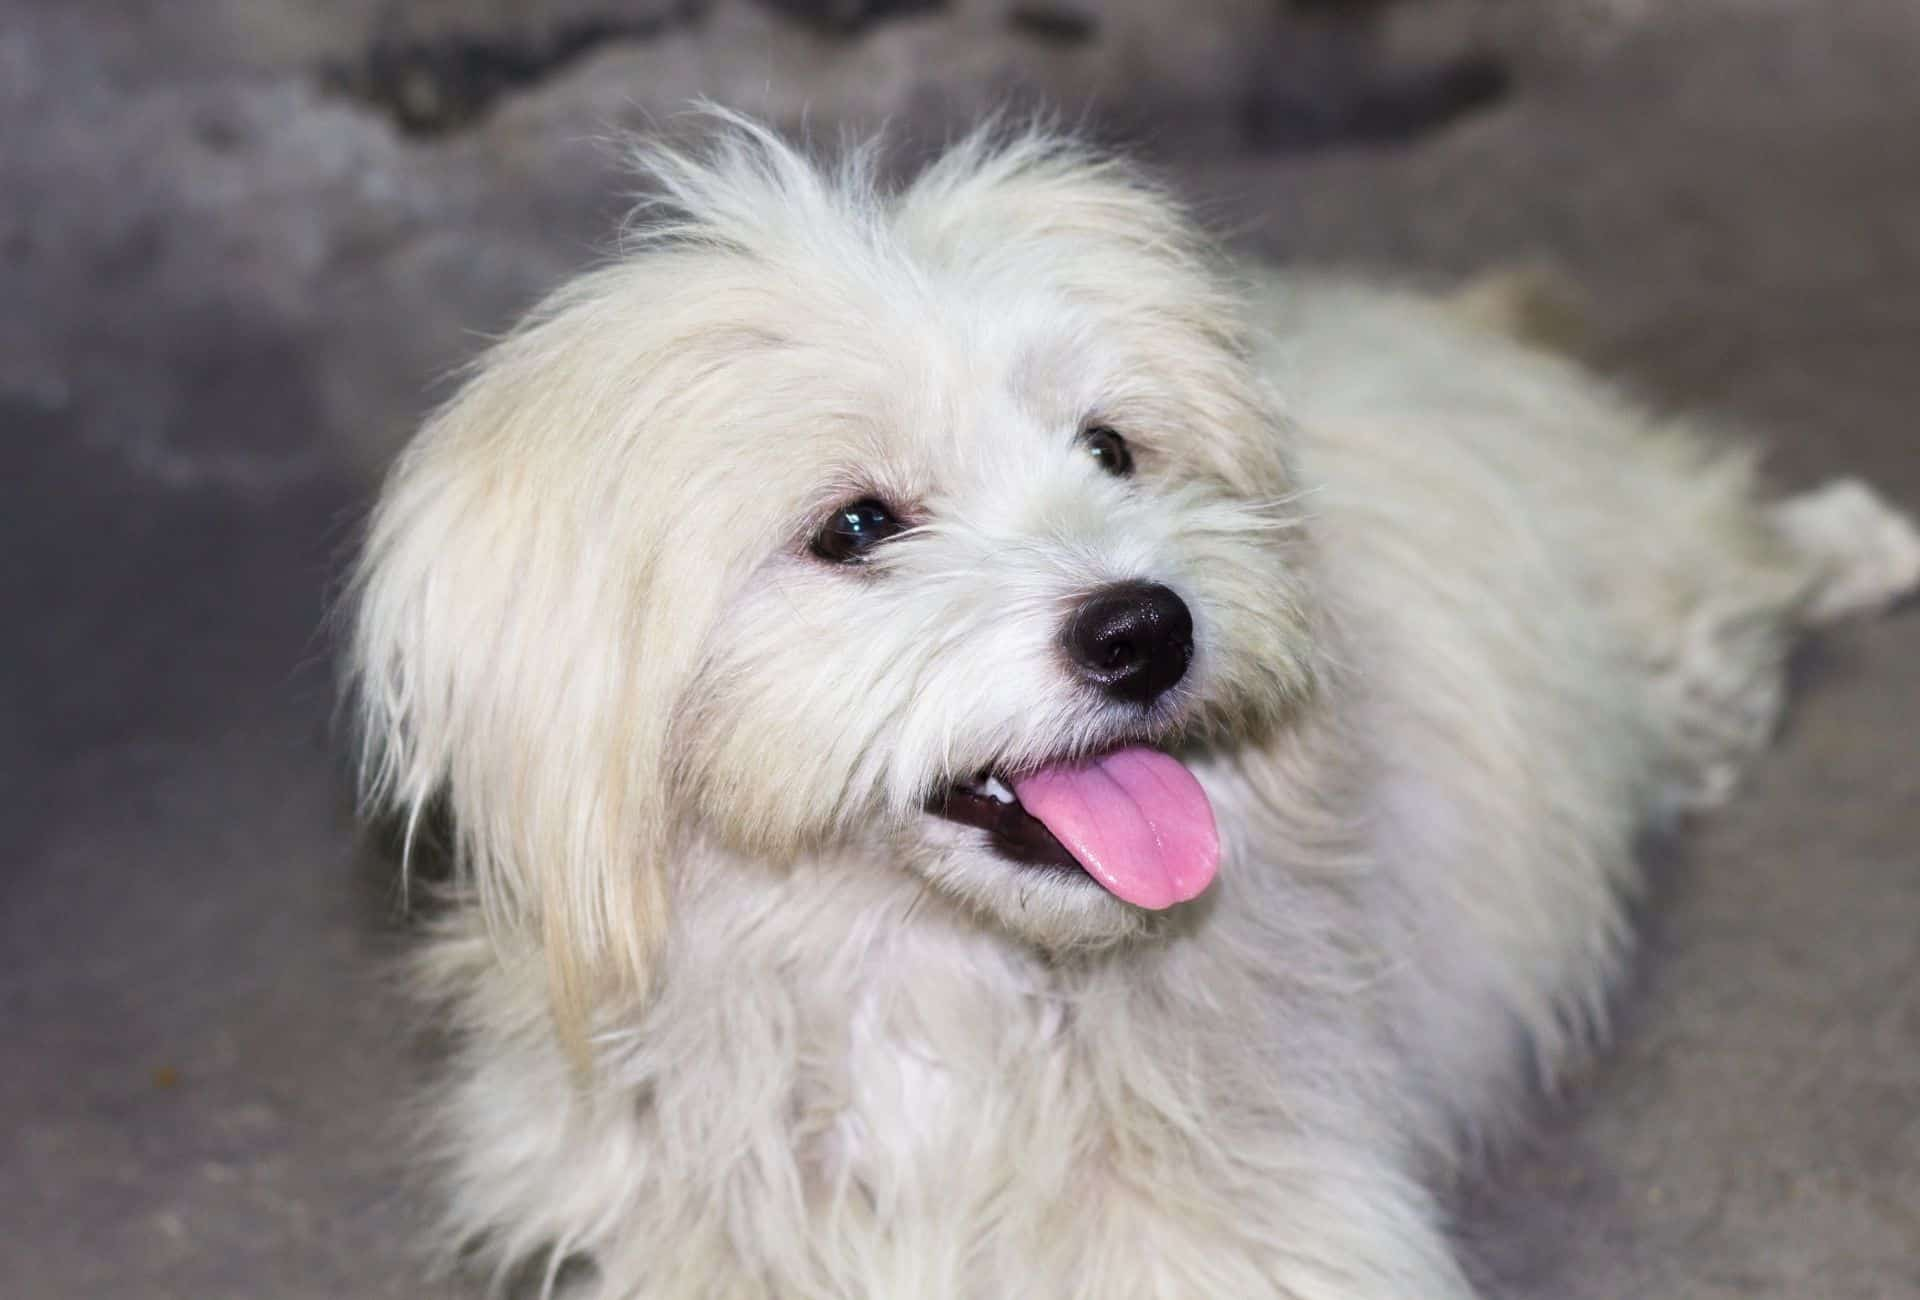 All-white Poodle Shih Tzu mix with the typical long Shih Tzu hair around the ears.